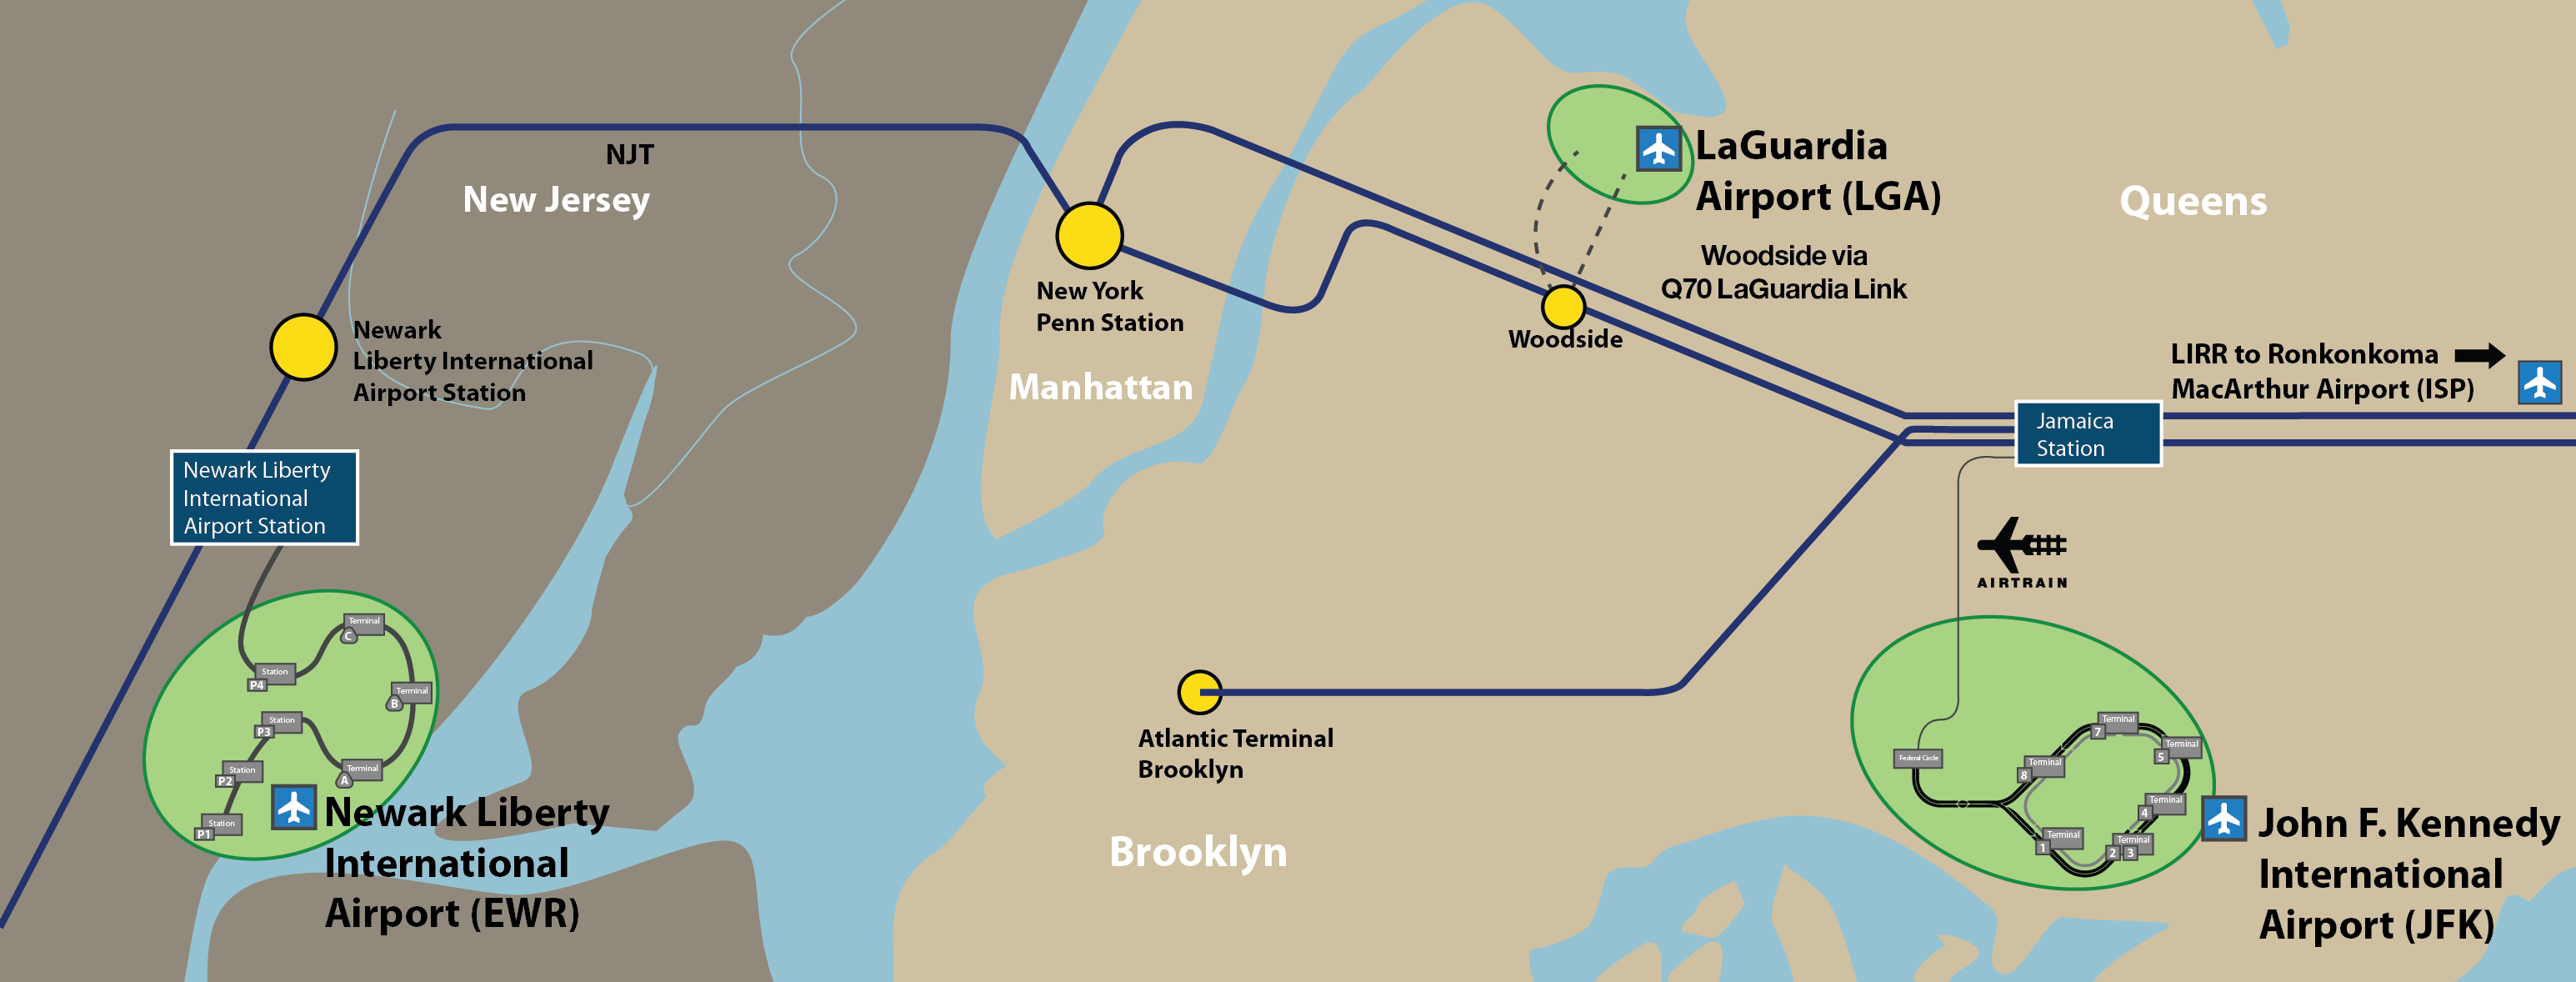 Laguardia Subway Map.Take The Train To The Plane At Jfk Lga Isp Ewr